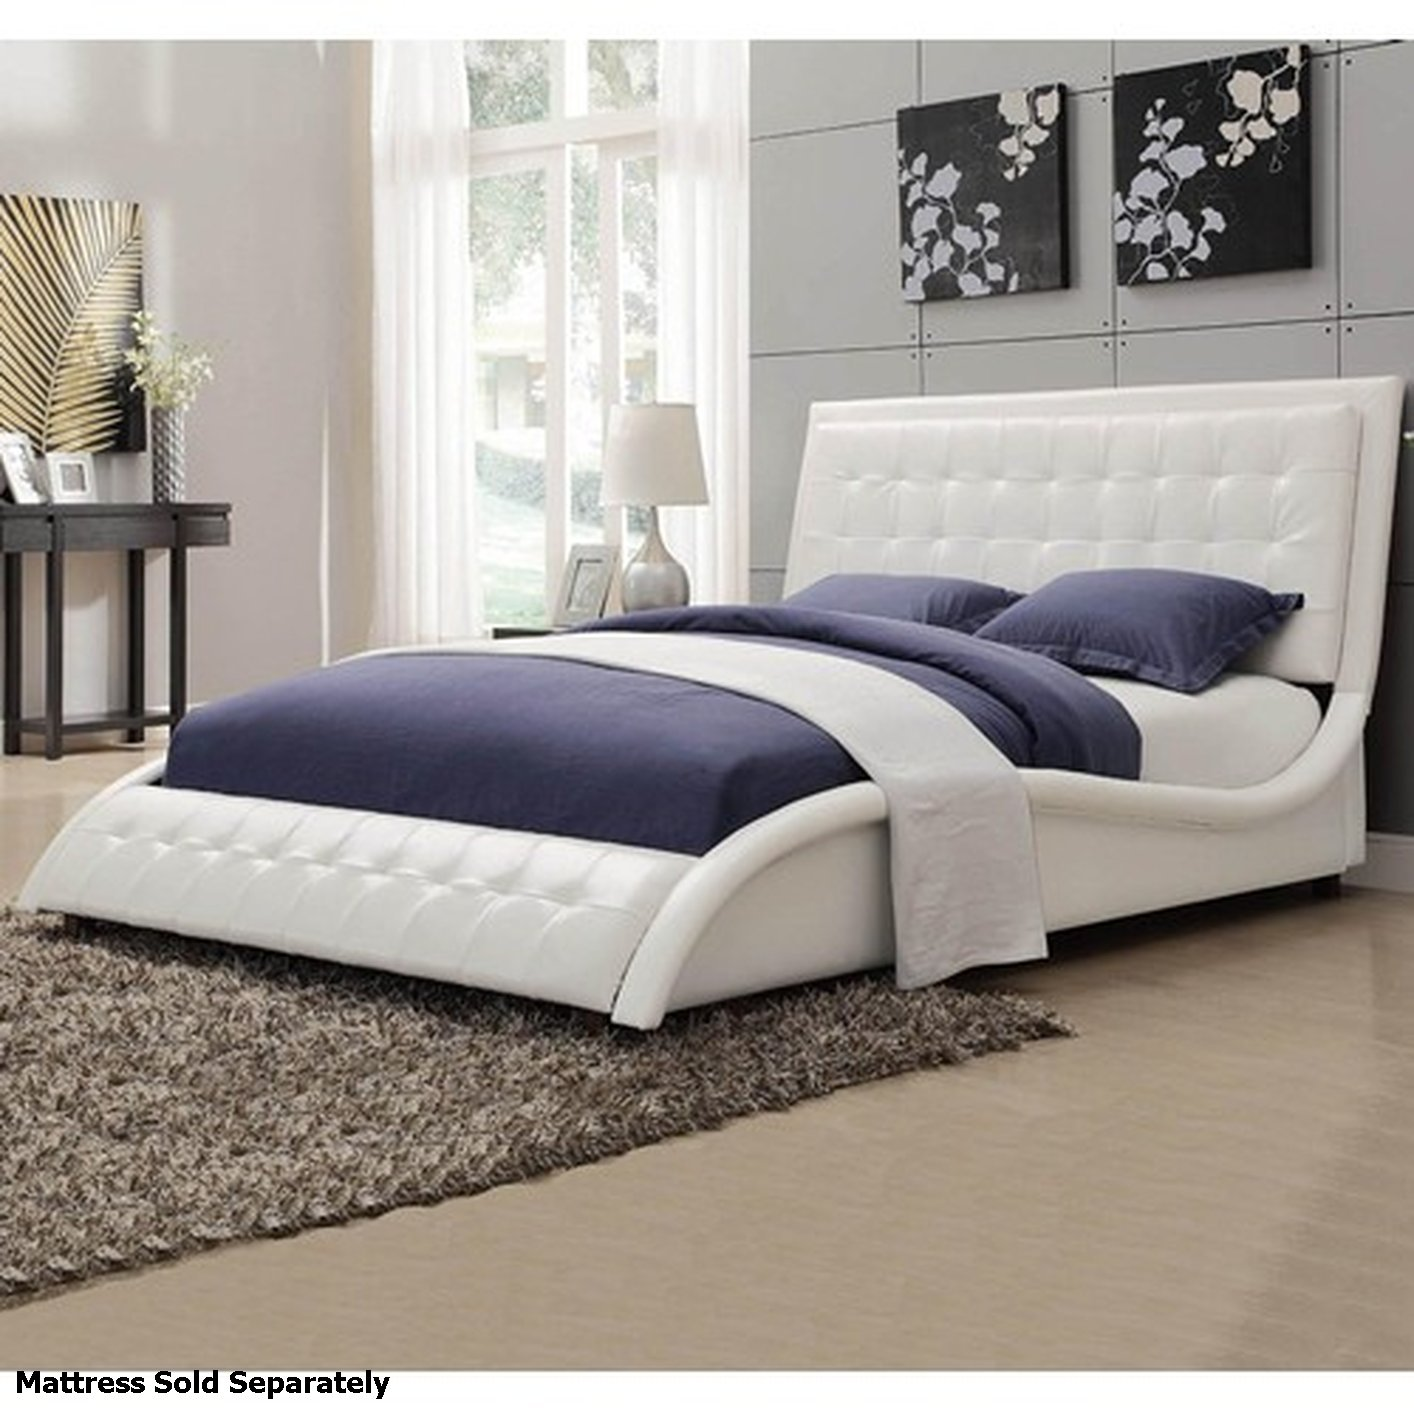 queen size bed queen sized bed b29 all about perfect bedroom decoration diy with queen VATFYOI